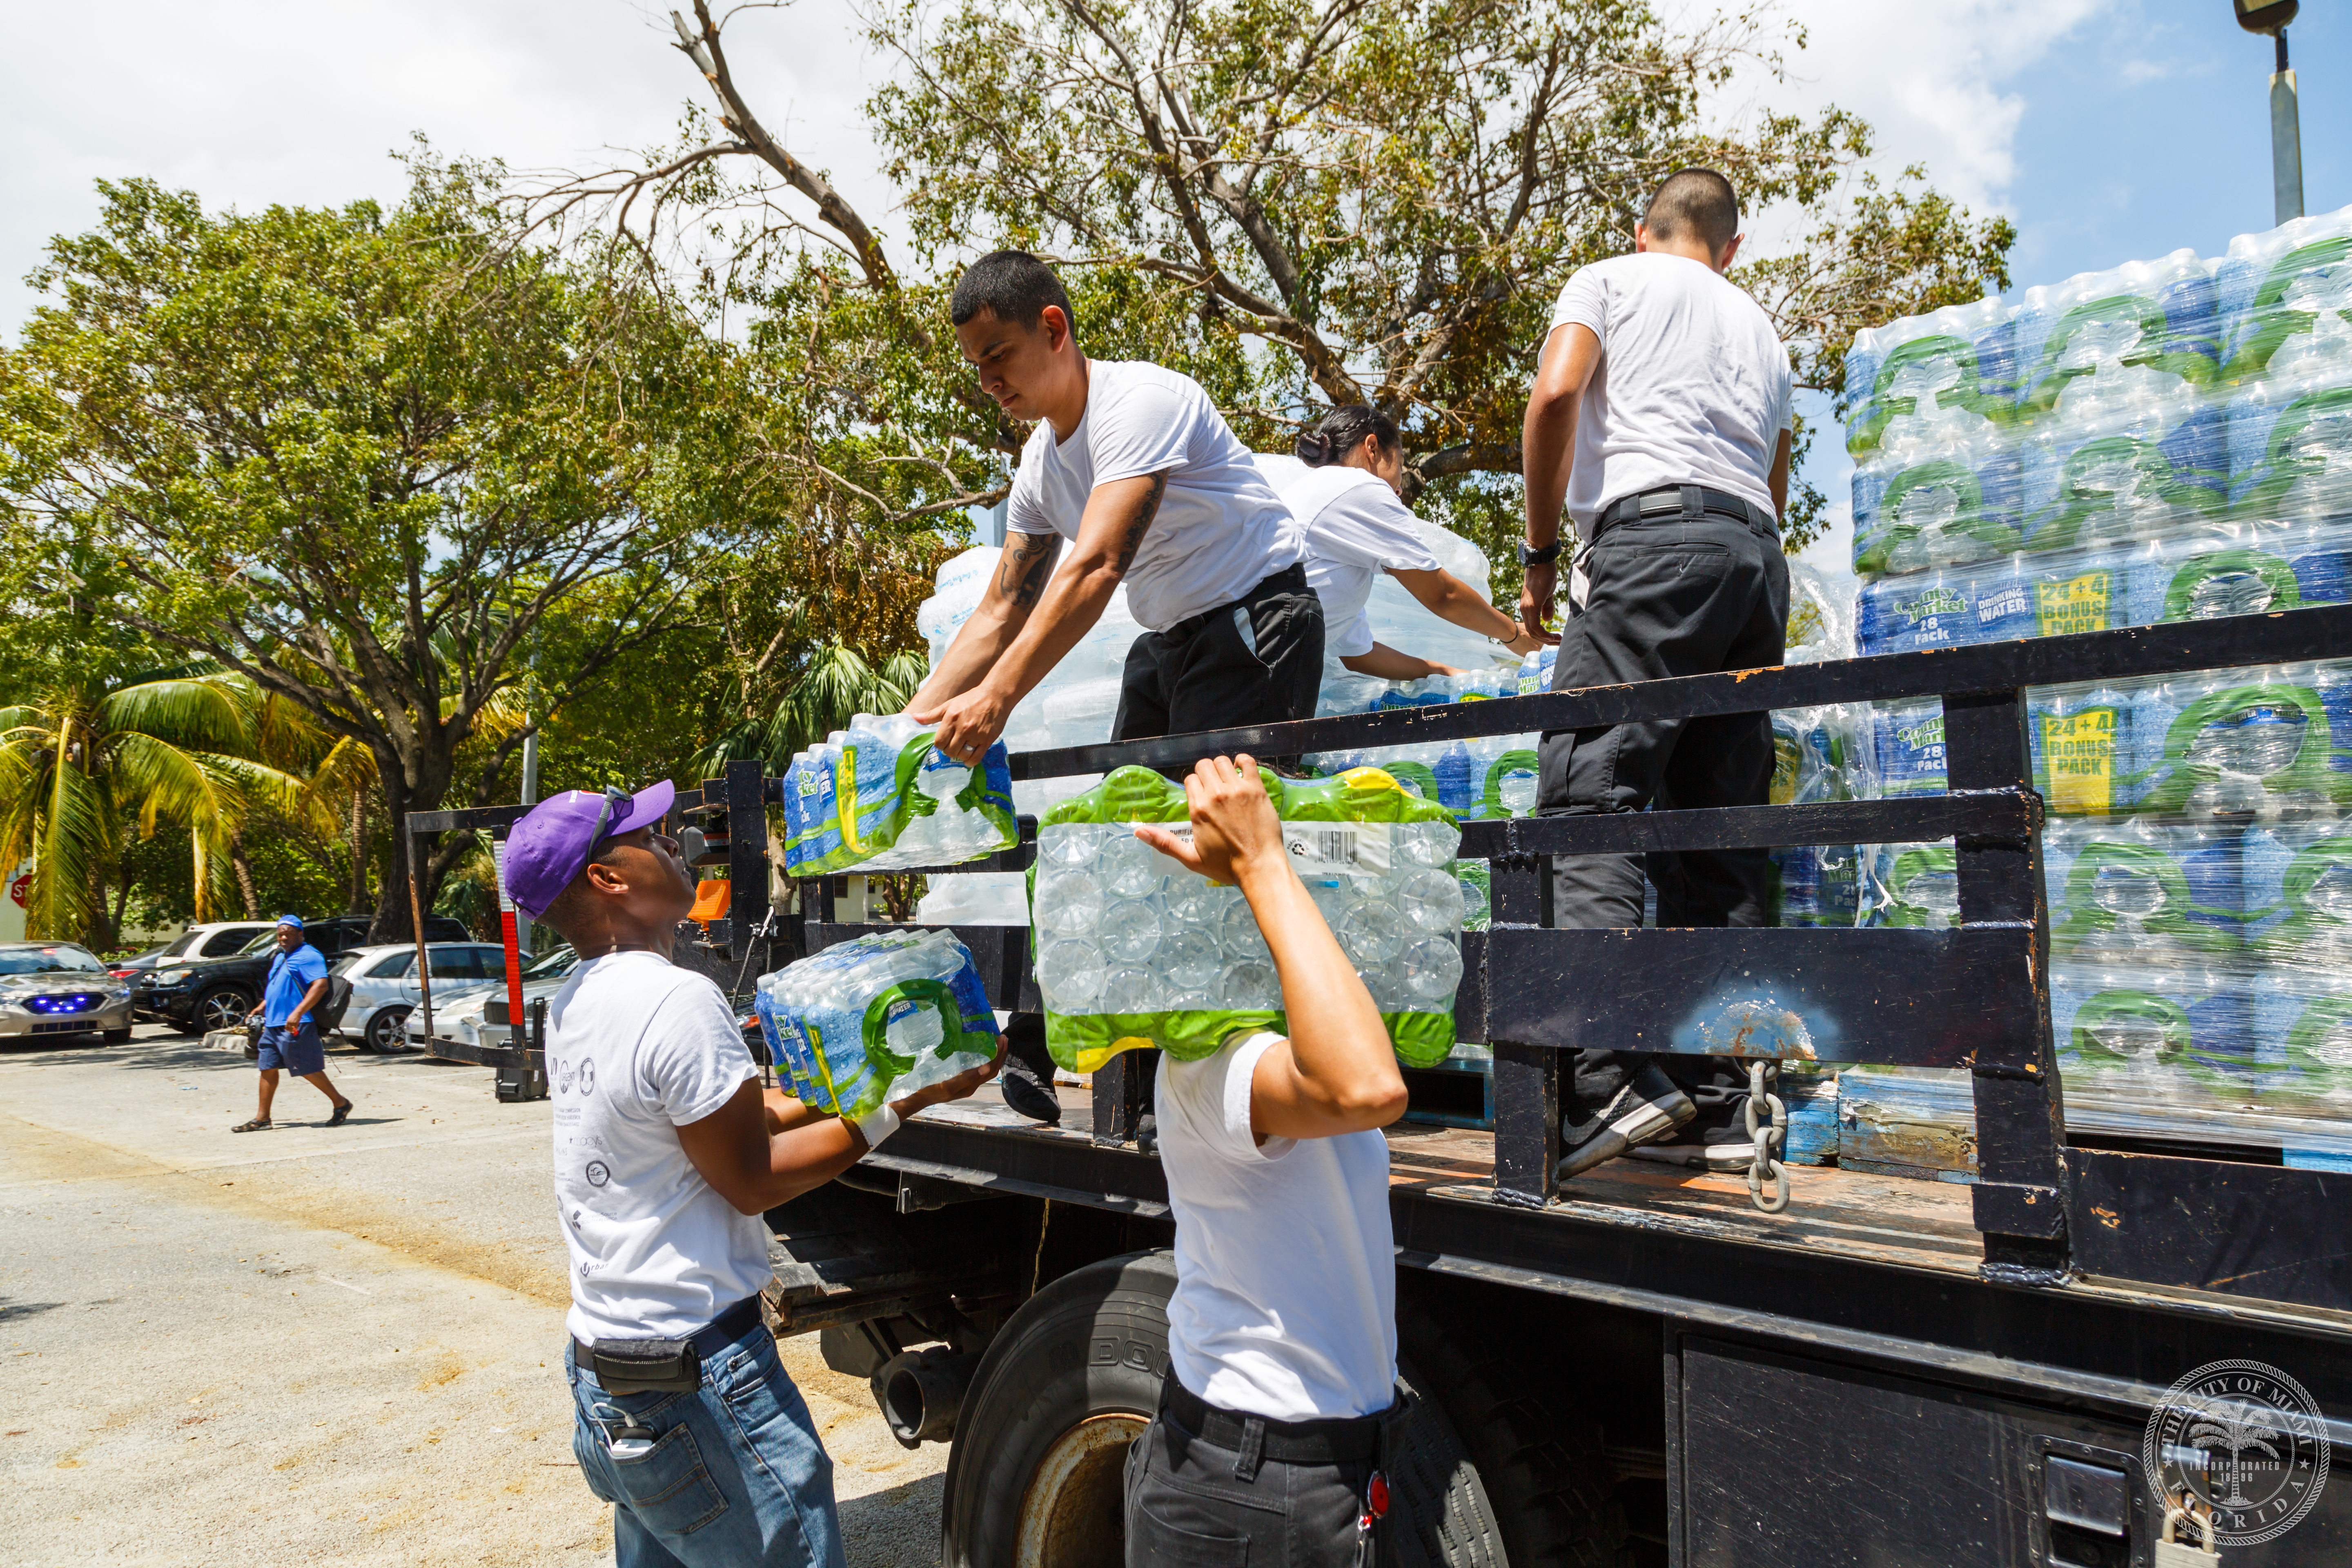 city staff unloading packages of water bottles off a truck